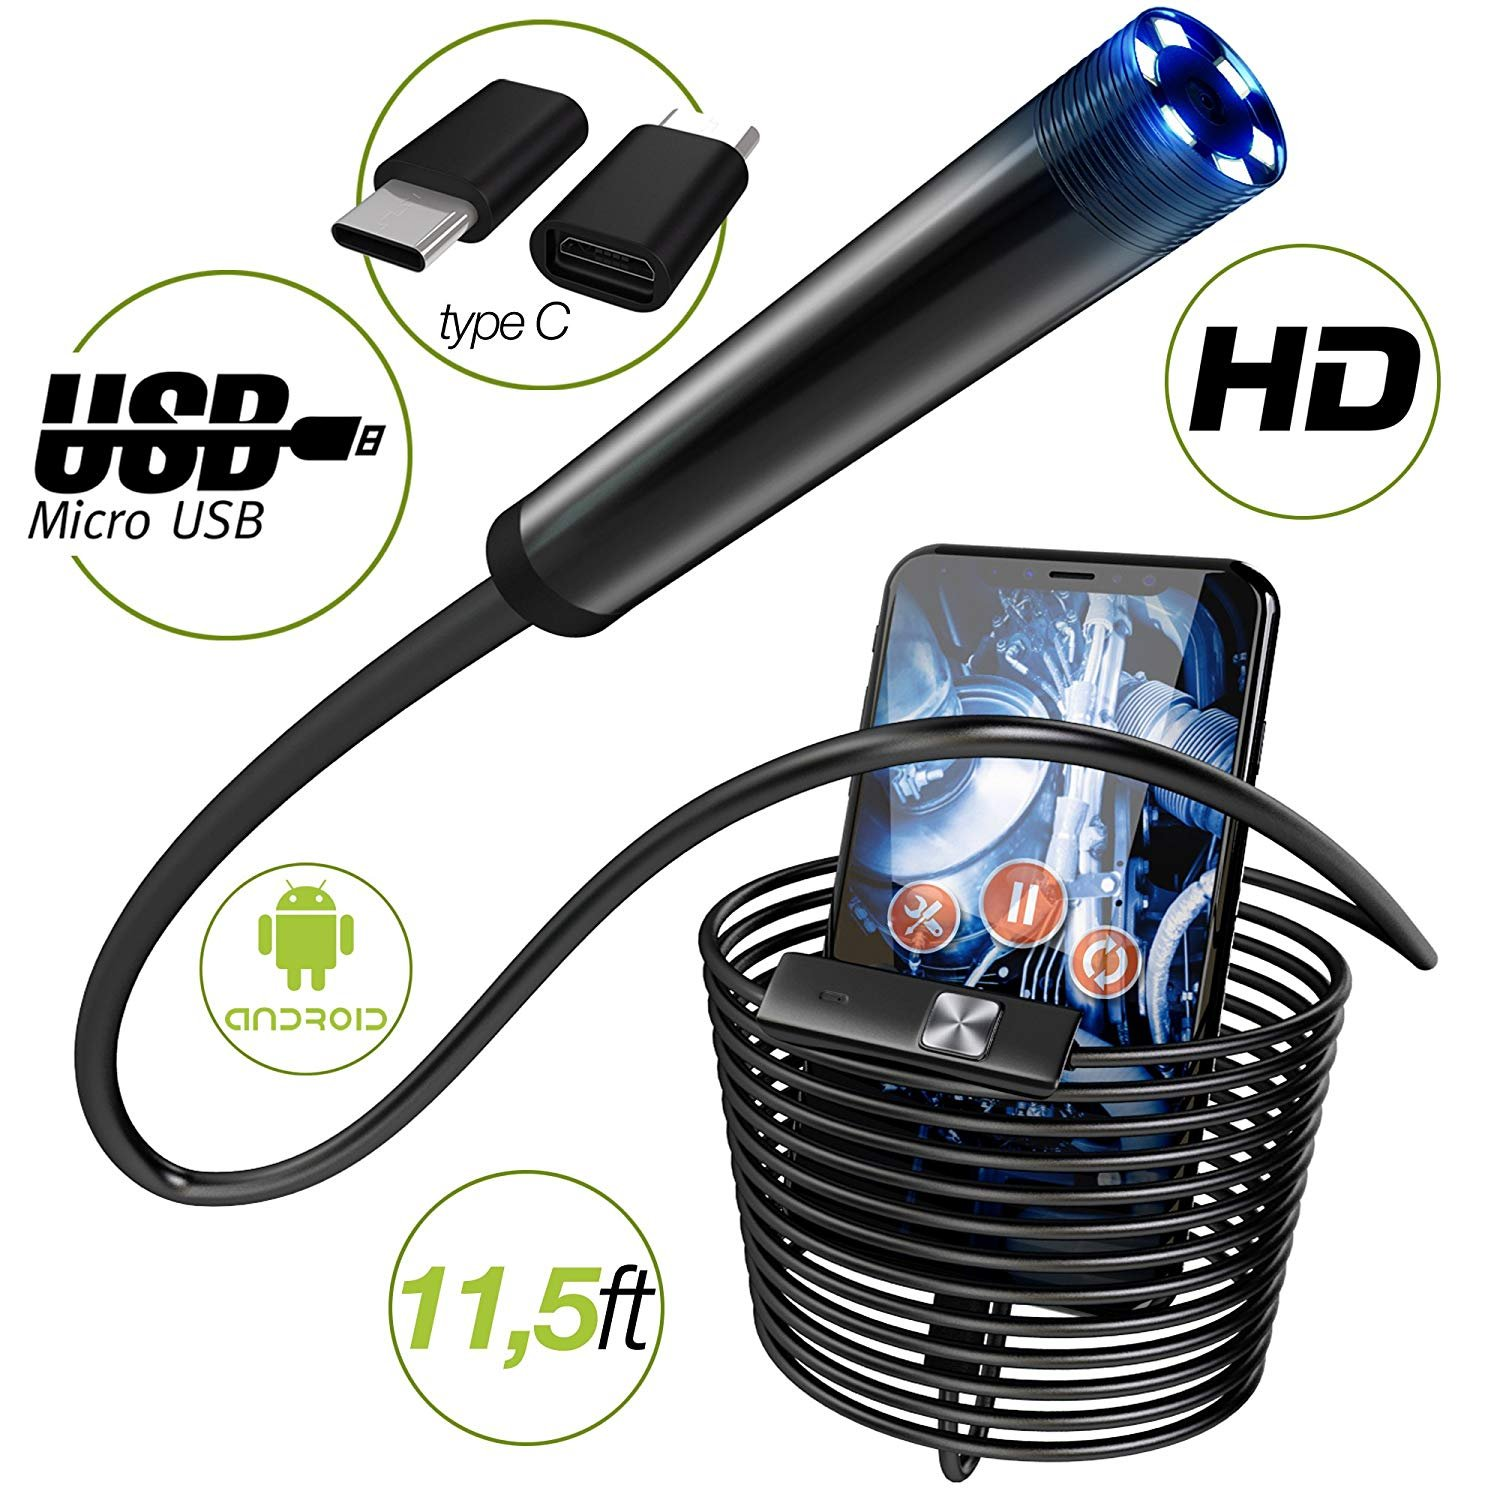 Endoscope - Borescope - Endoscope Android- USB Endoscope Borescope - micro USB - USB C Inspection Camera - Waterproof LED Automotive Vehicle Bore Drain Digital HD Semi-rigid OTG Android with Case